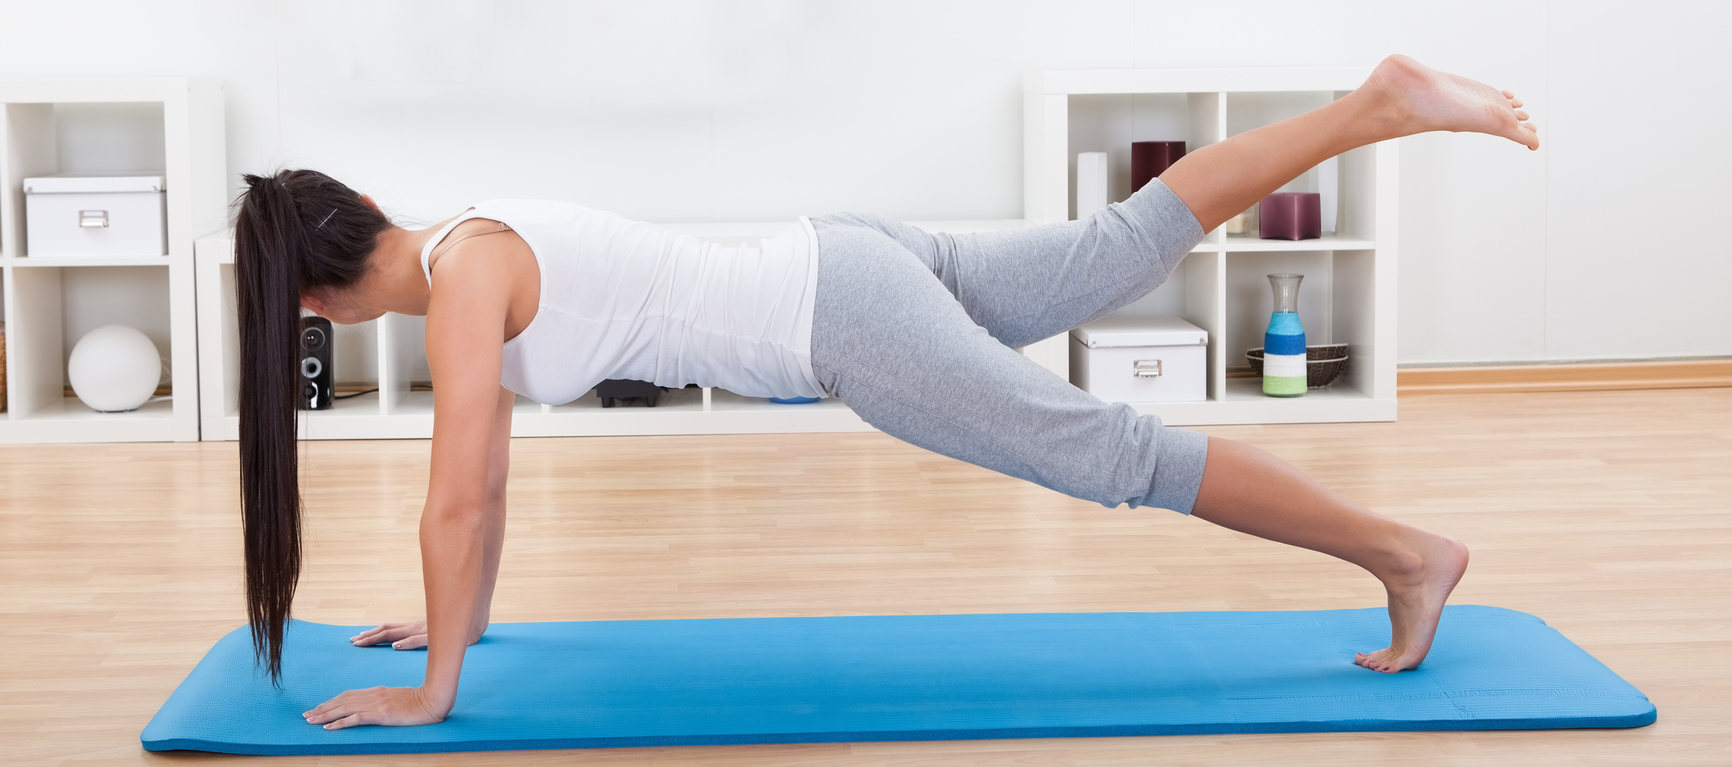 Ideas to Make Room for Home Fitness Training Picture